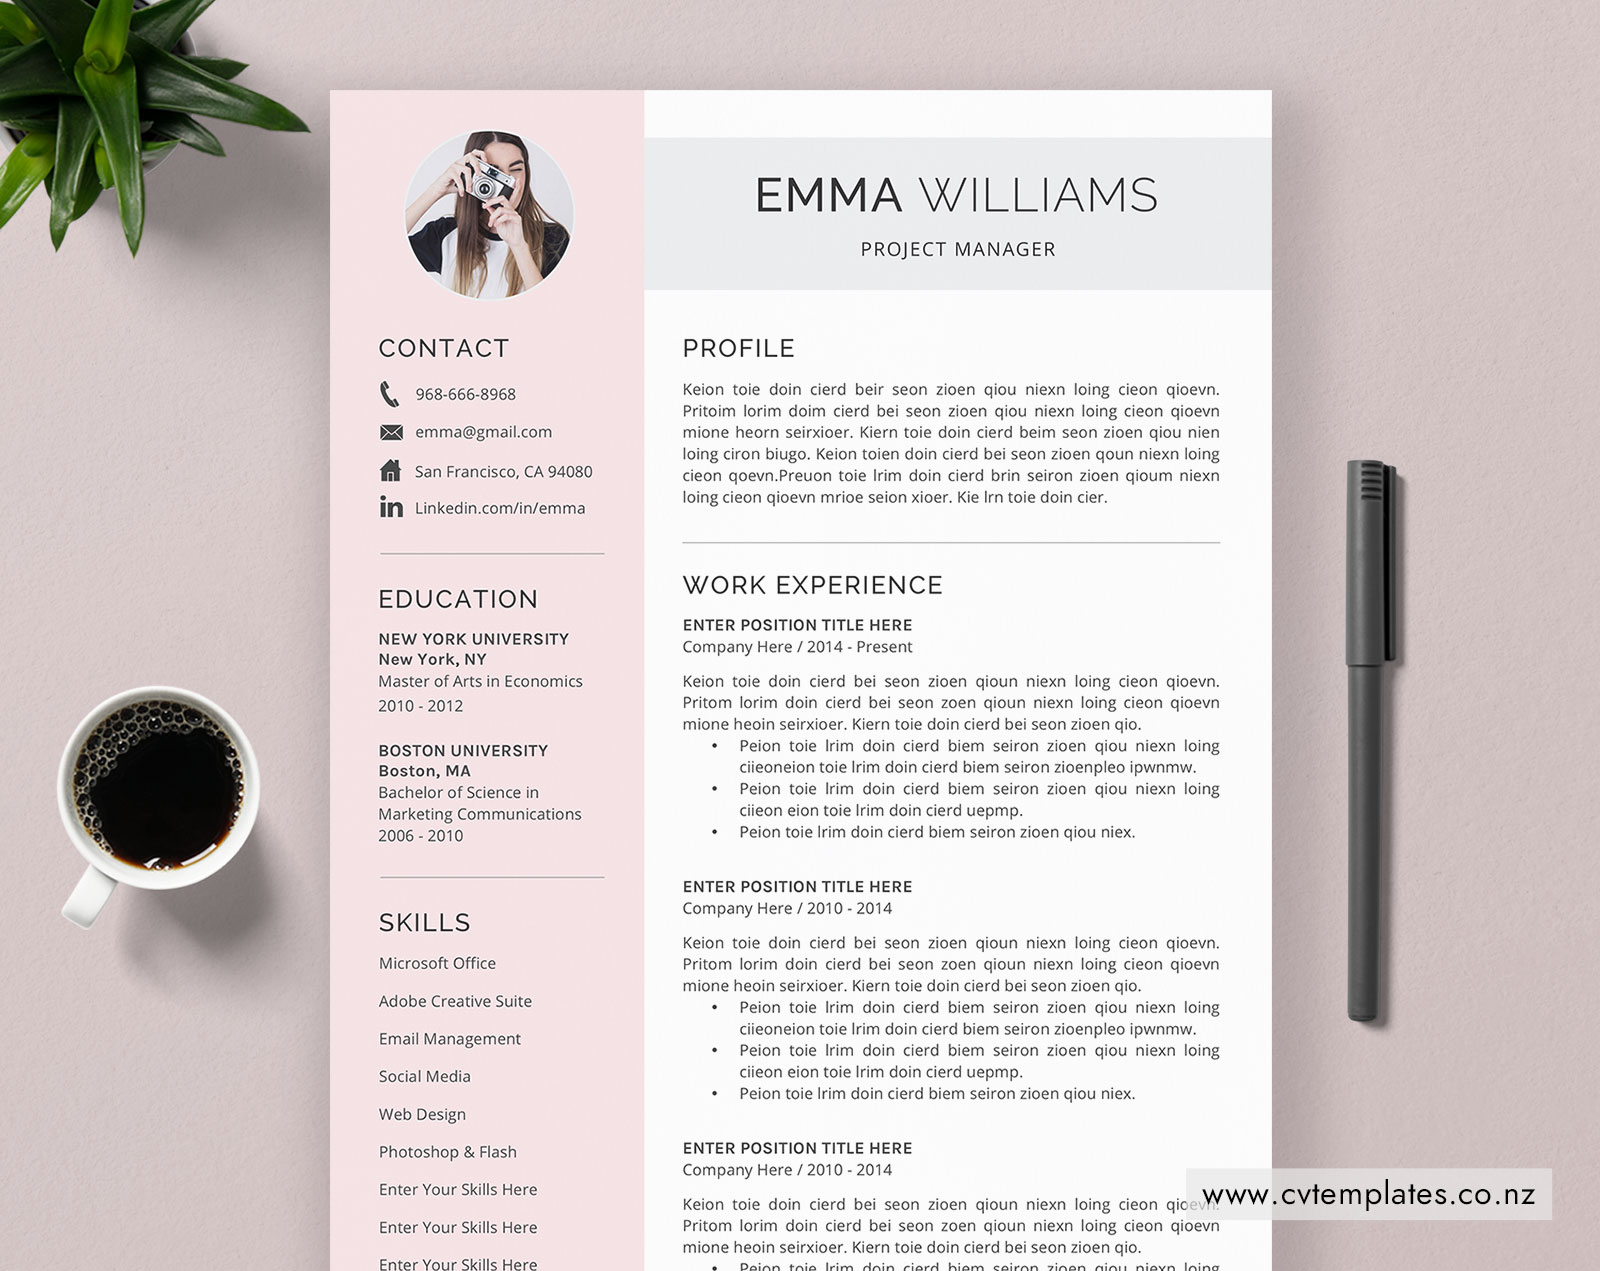 CV Template for MS Word, Minimalist Curriculum Vitae, Professional CV  Template, Cover Letter, Modern & Creative Resume Template Design, Instant  ...